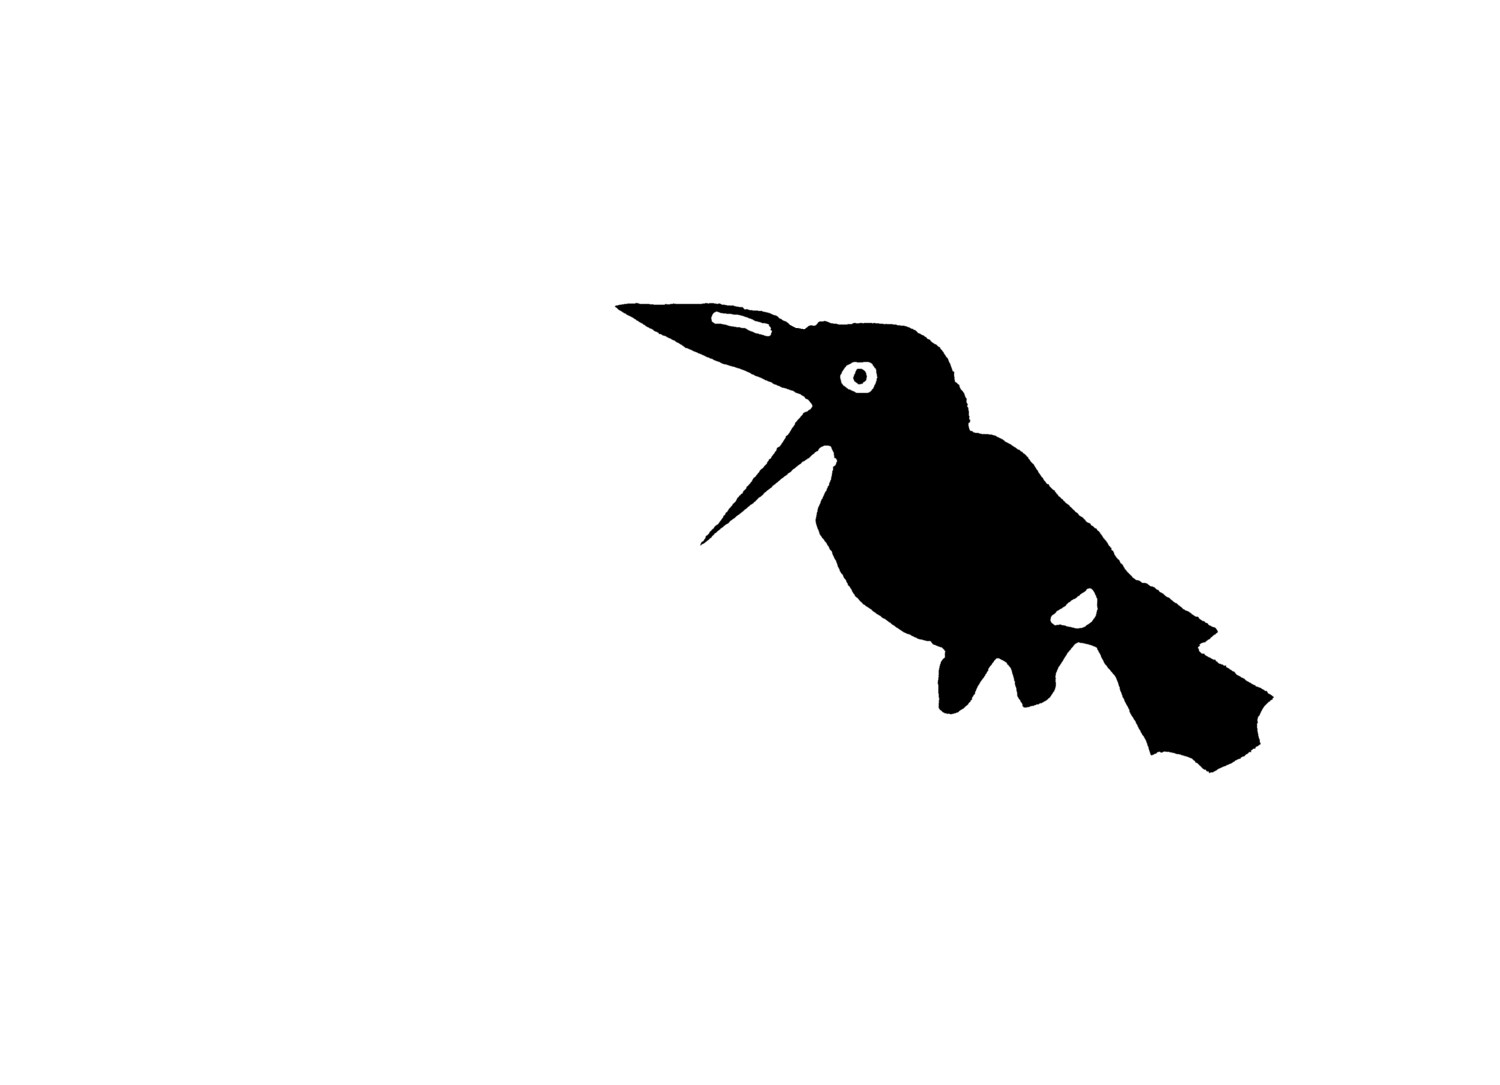 Cradle Mountain Film Festival